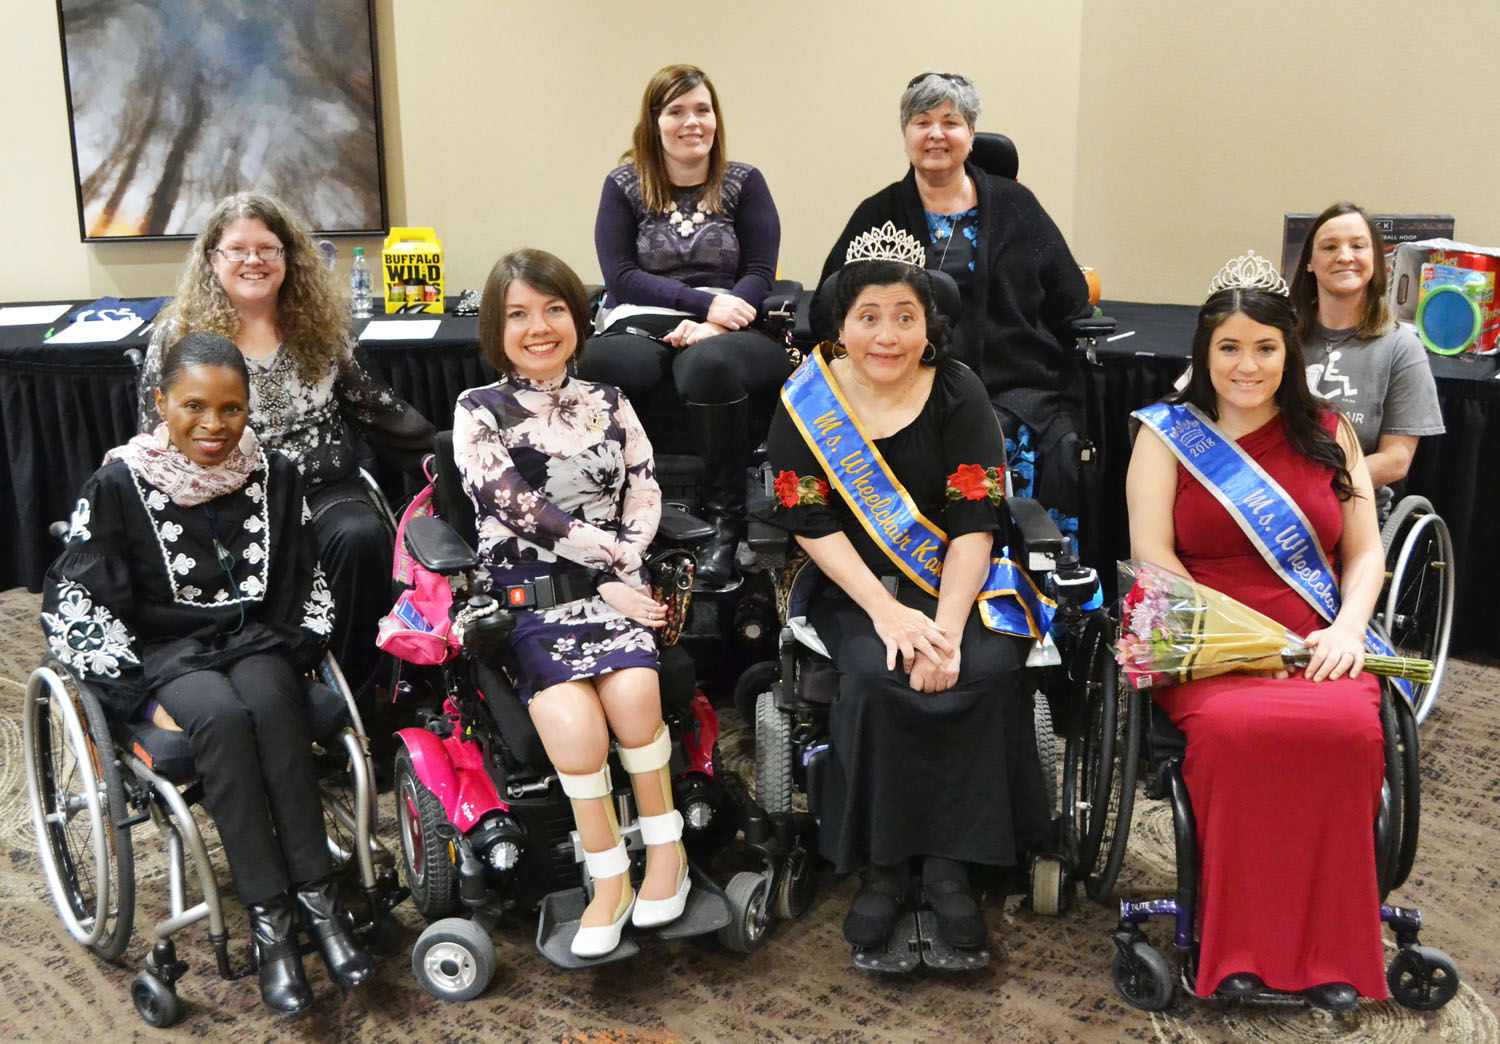 A group of about 10 titleholders gather for a photo